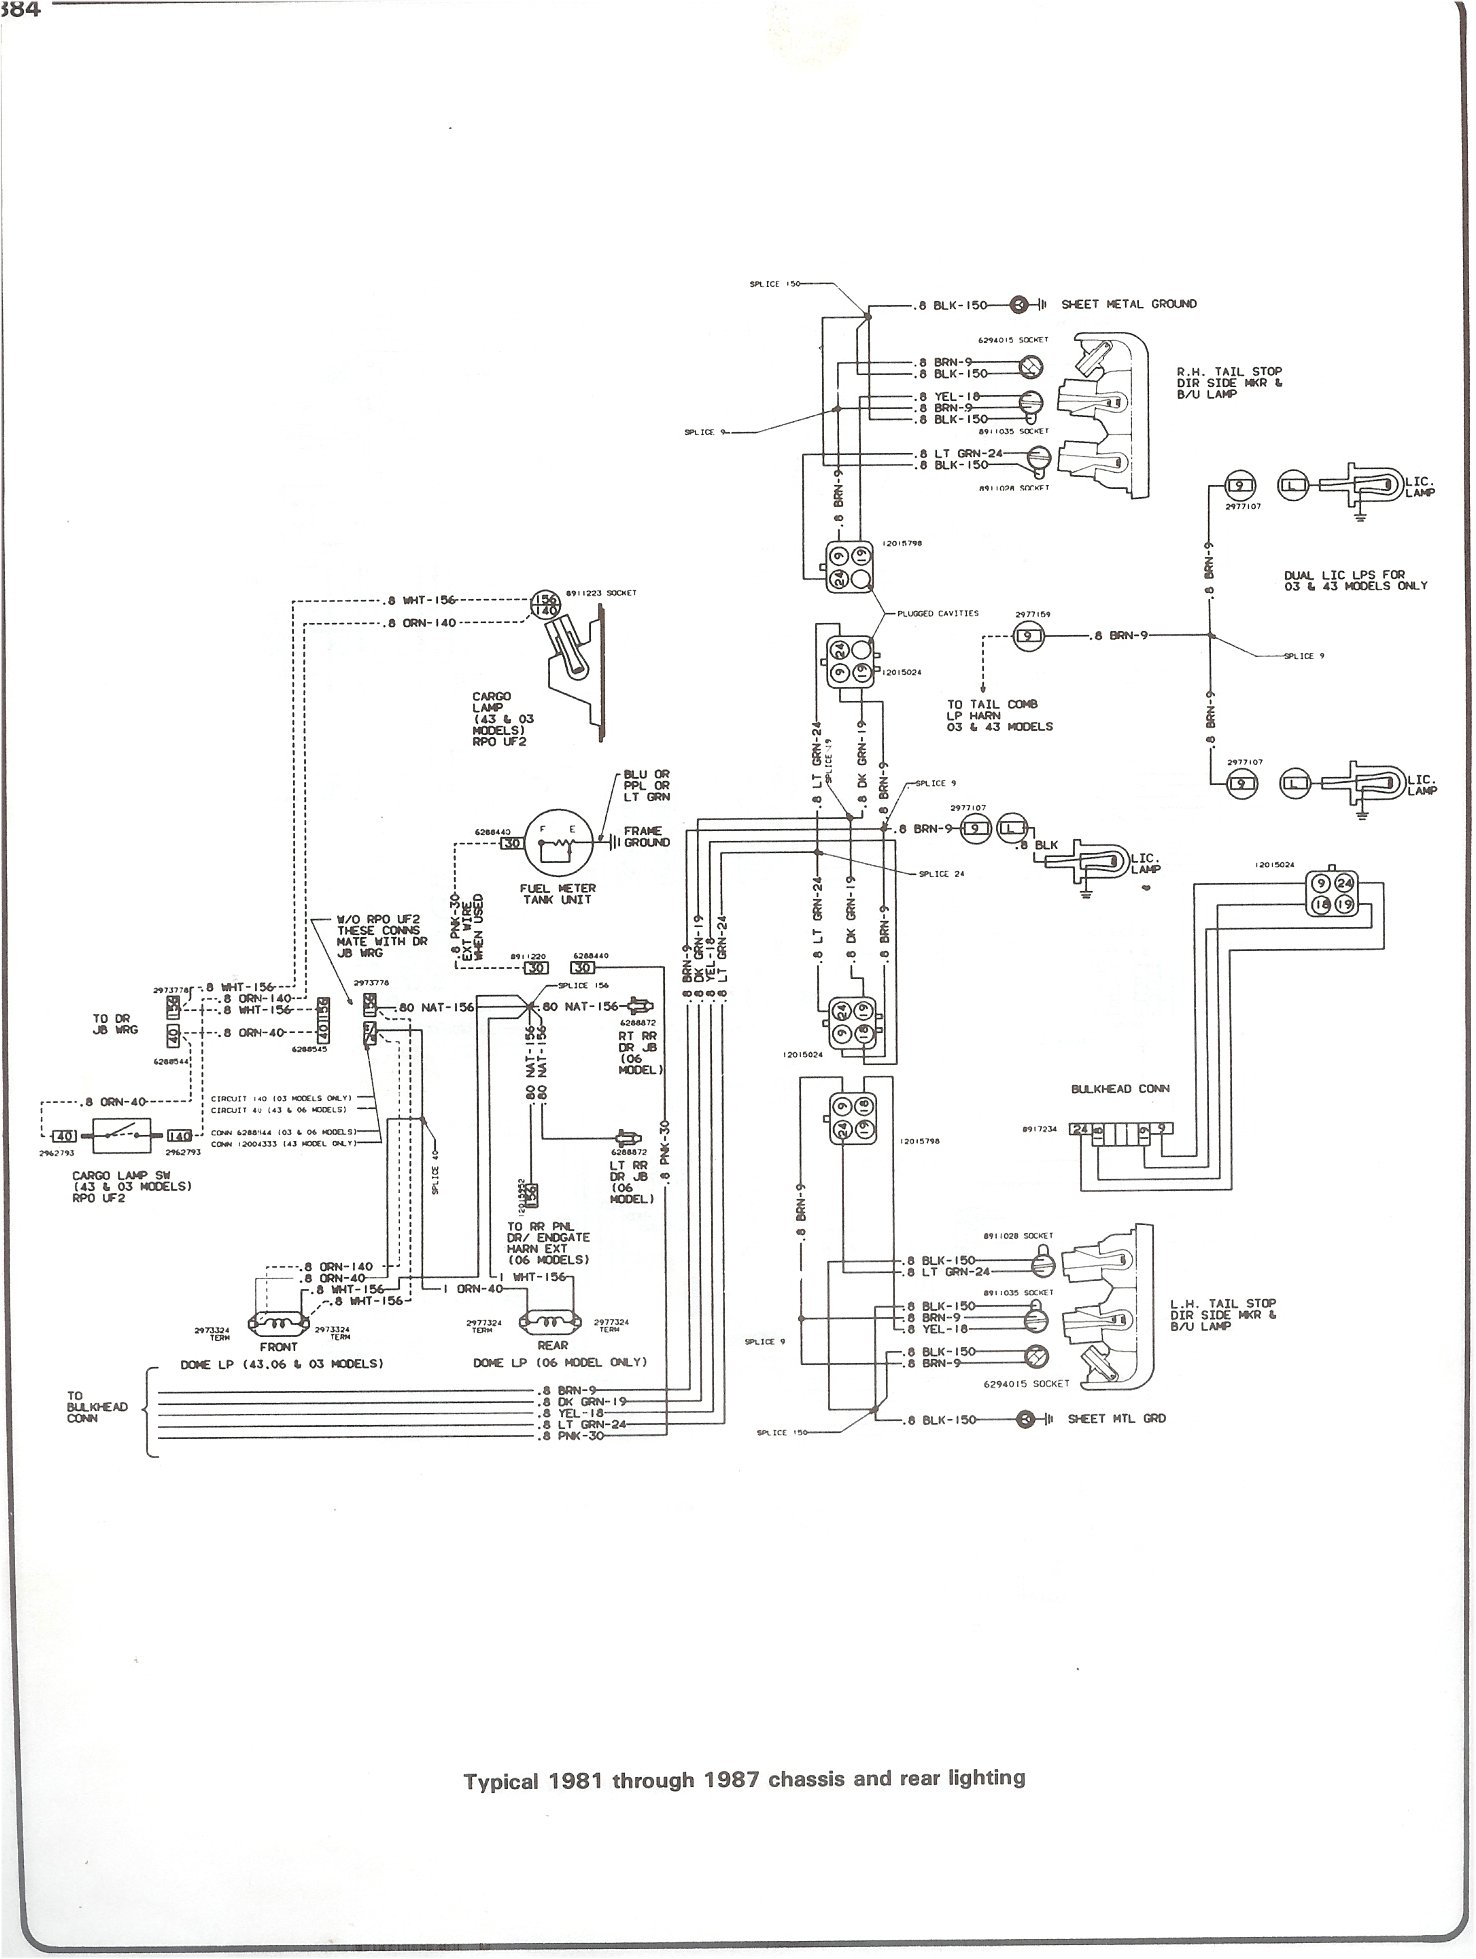 window wire diagram 85 chevy wiring library Leviton Power Pack Wiring Diagram 81 87 chassis and rear lighting